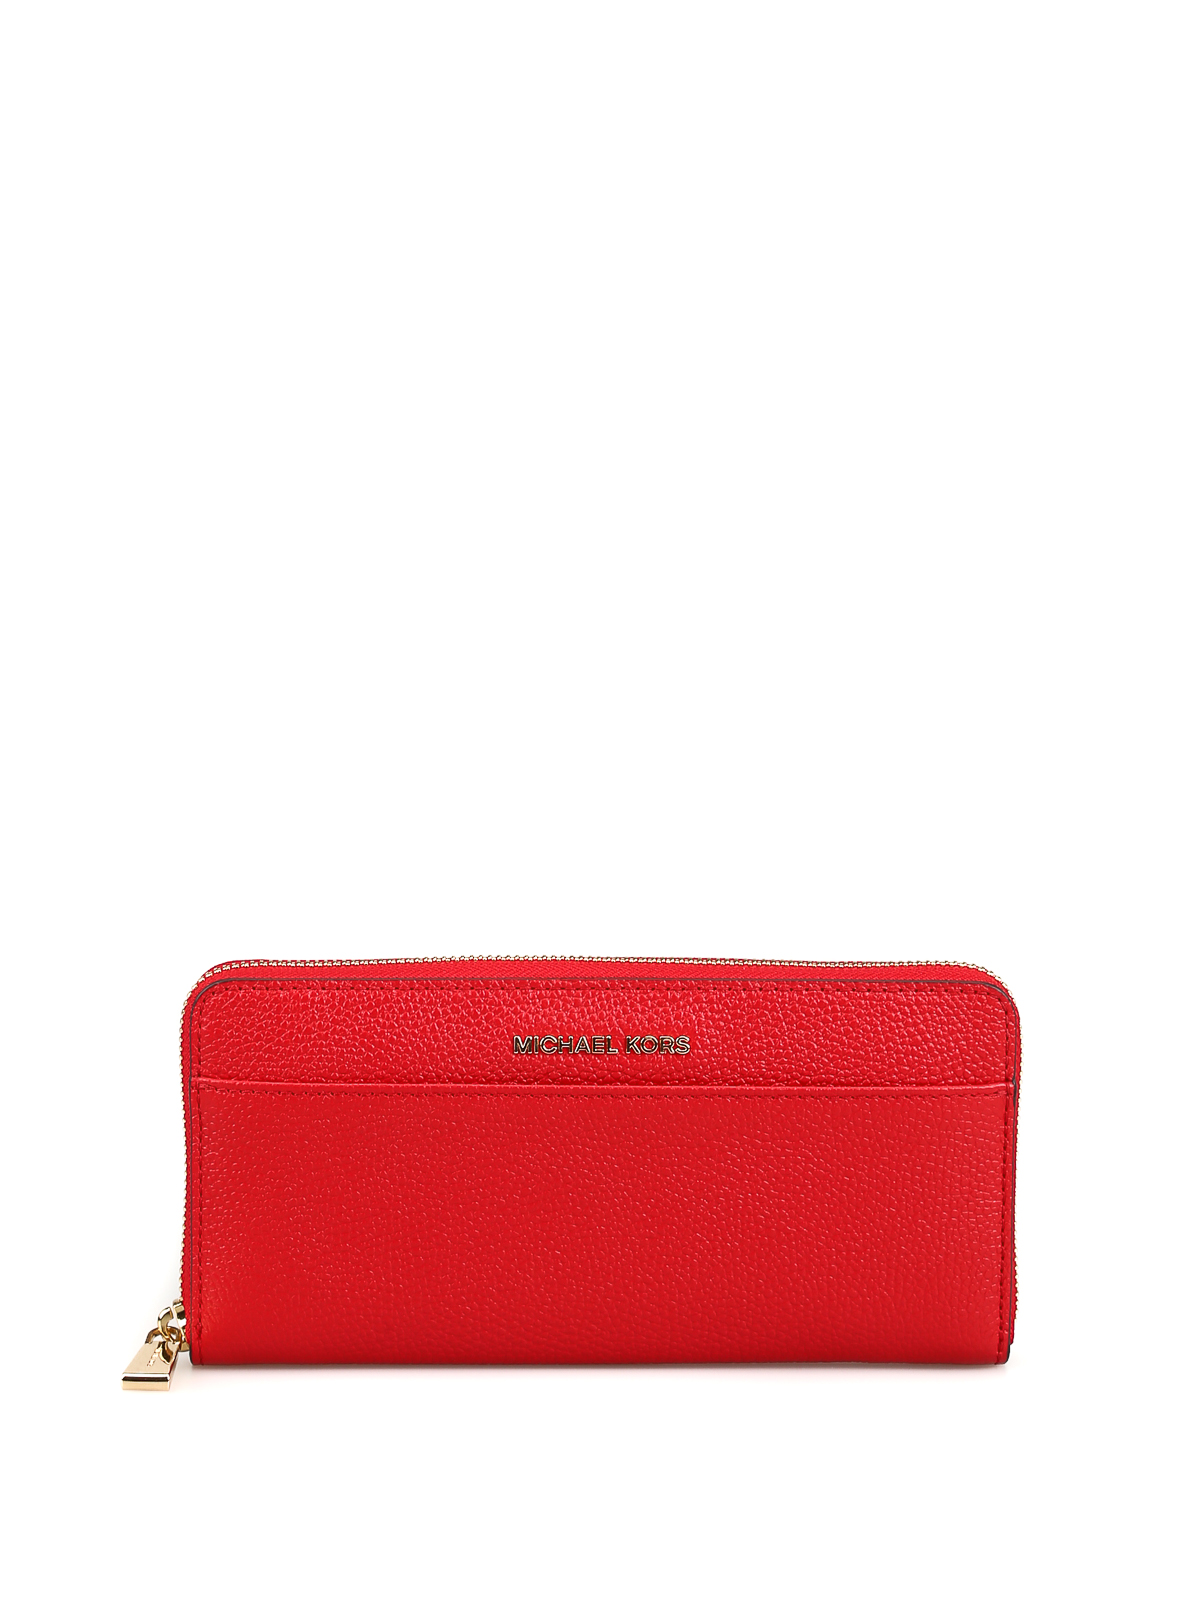 28cb776013c0 MICHAEL KORS: wallets & purses - Bright red zip around continental wallet